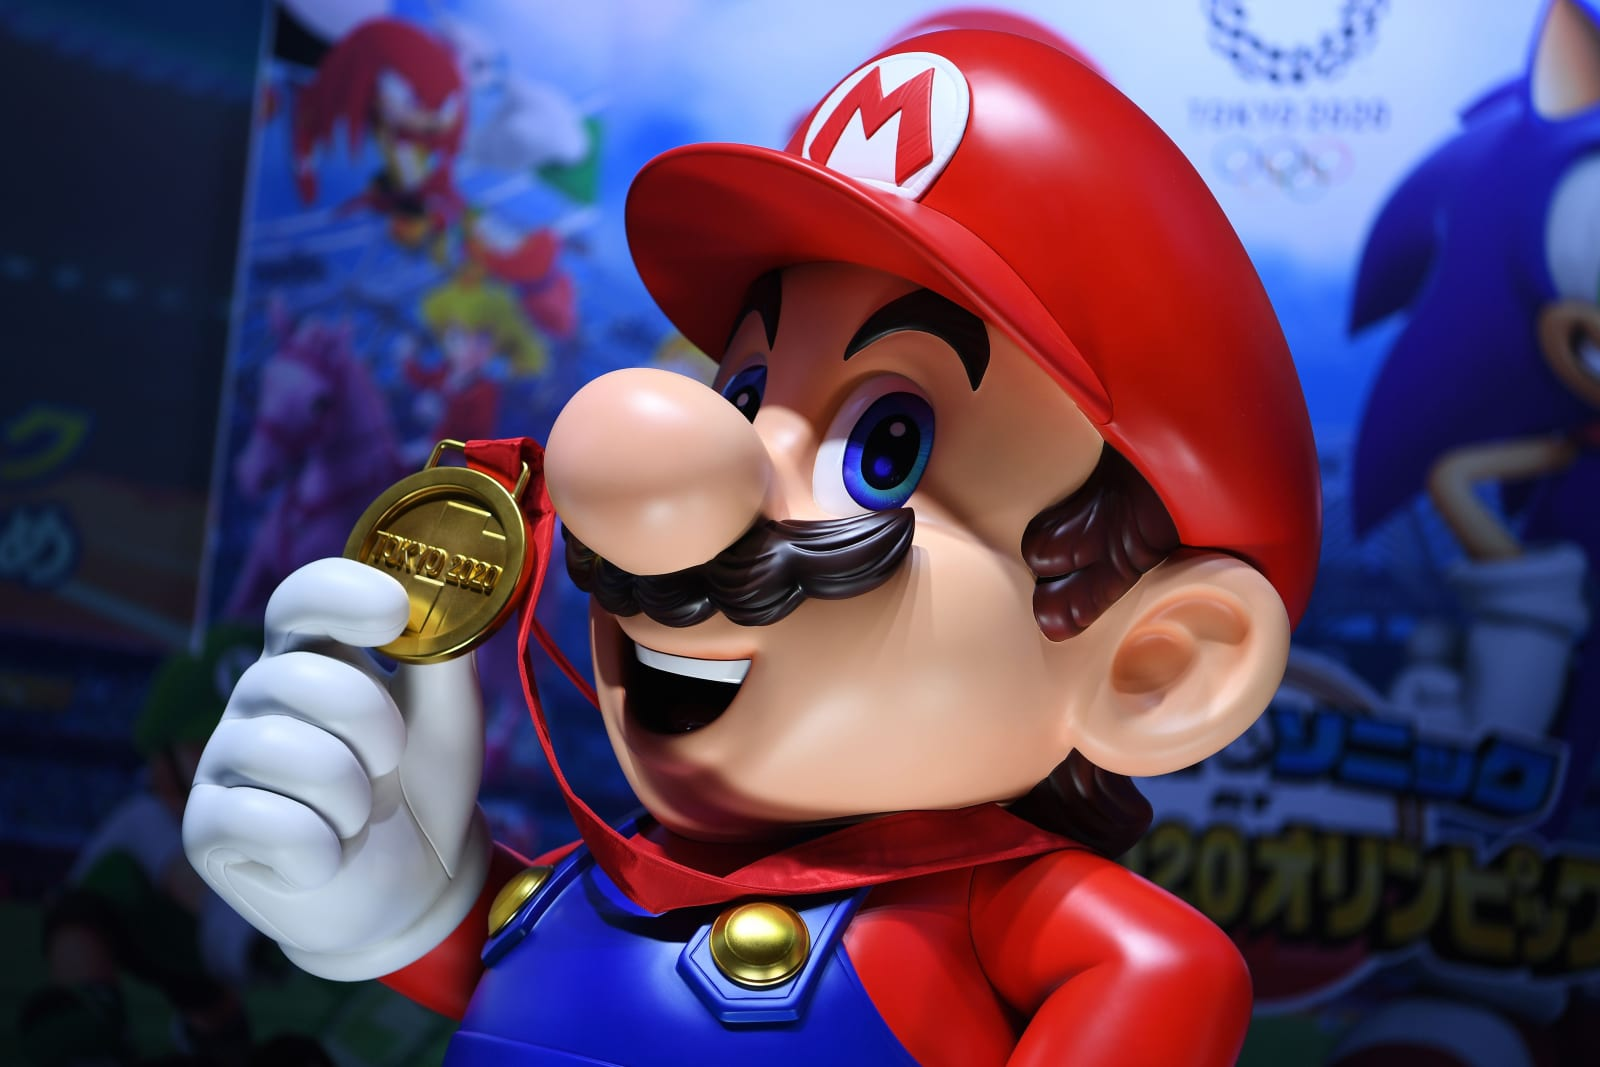 Tencent reportedly wants to develop its own games with Nintendo characters